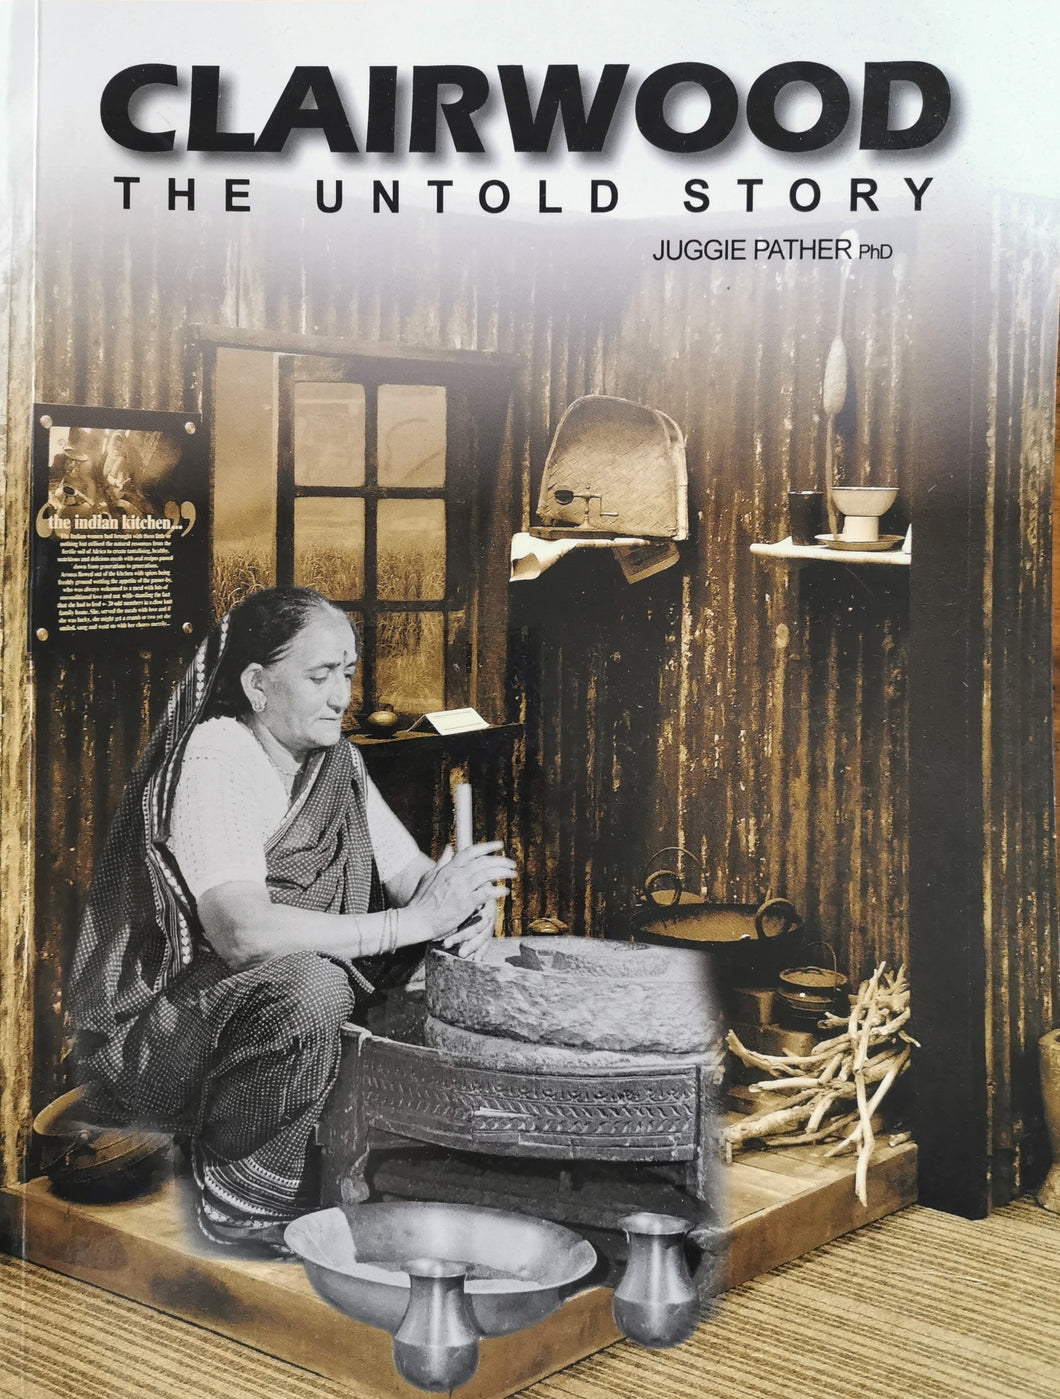 Clairwood - The Untold Story by Juggie Pather